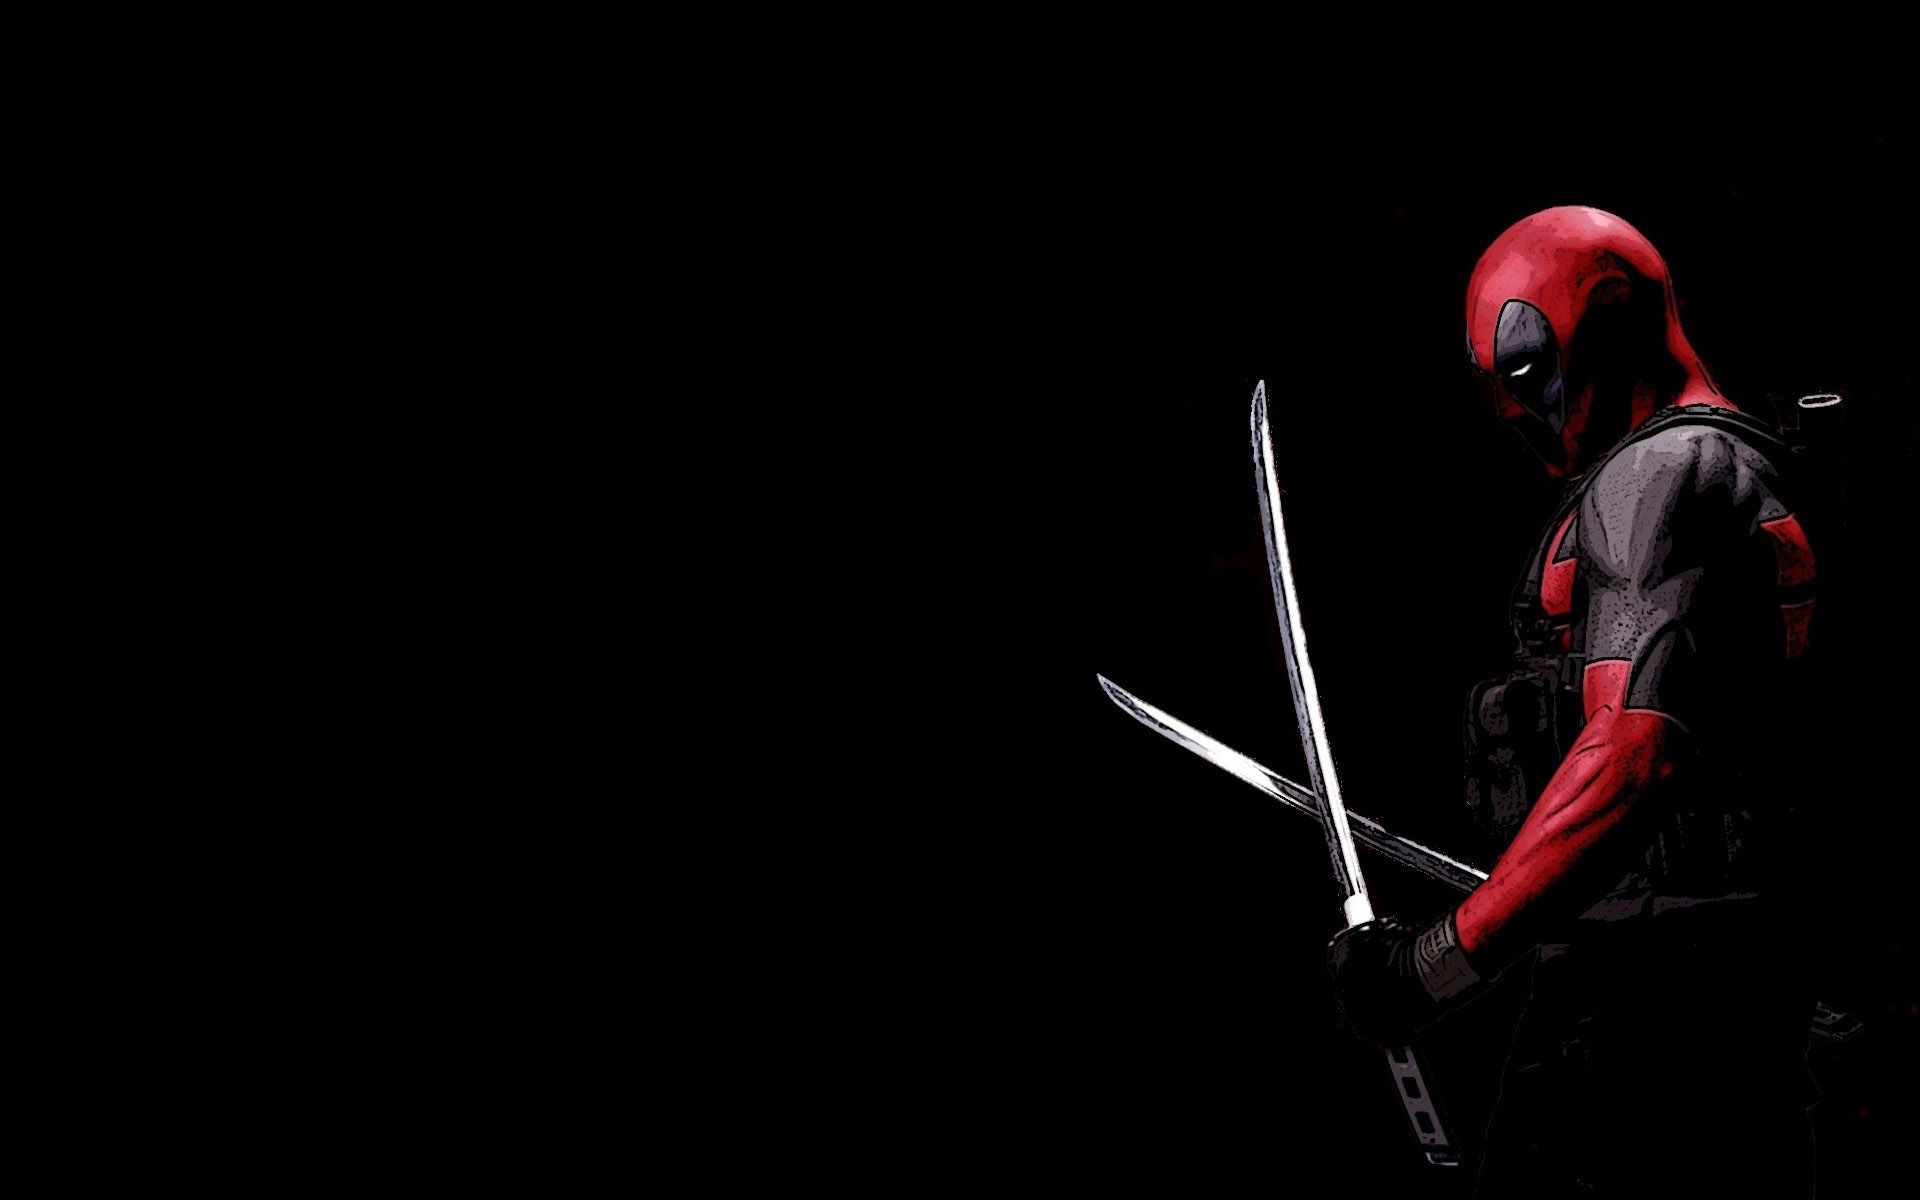 10 Latest Deadpool Desktop Wallpaper Hd FULL HD 1920×1080 For PC Background